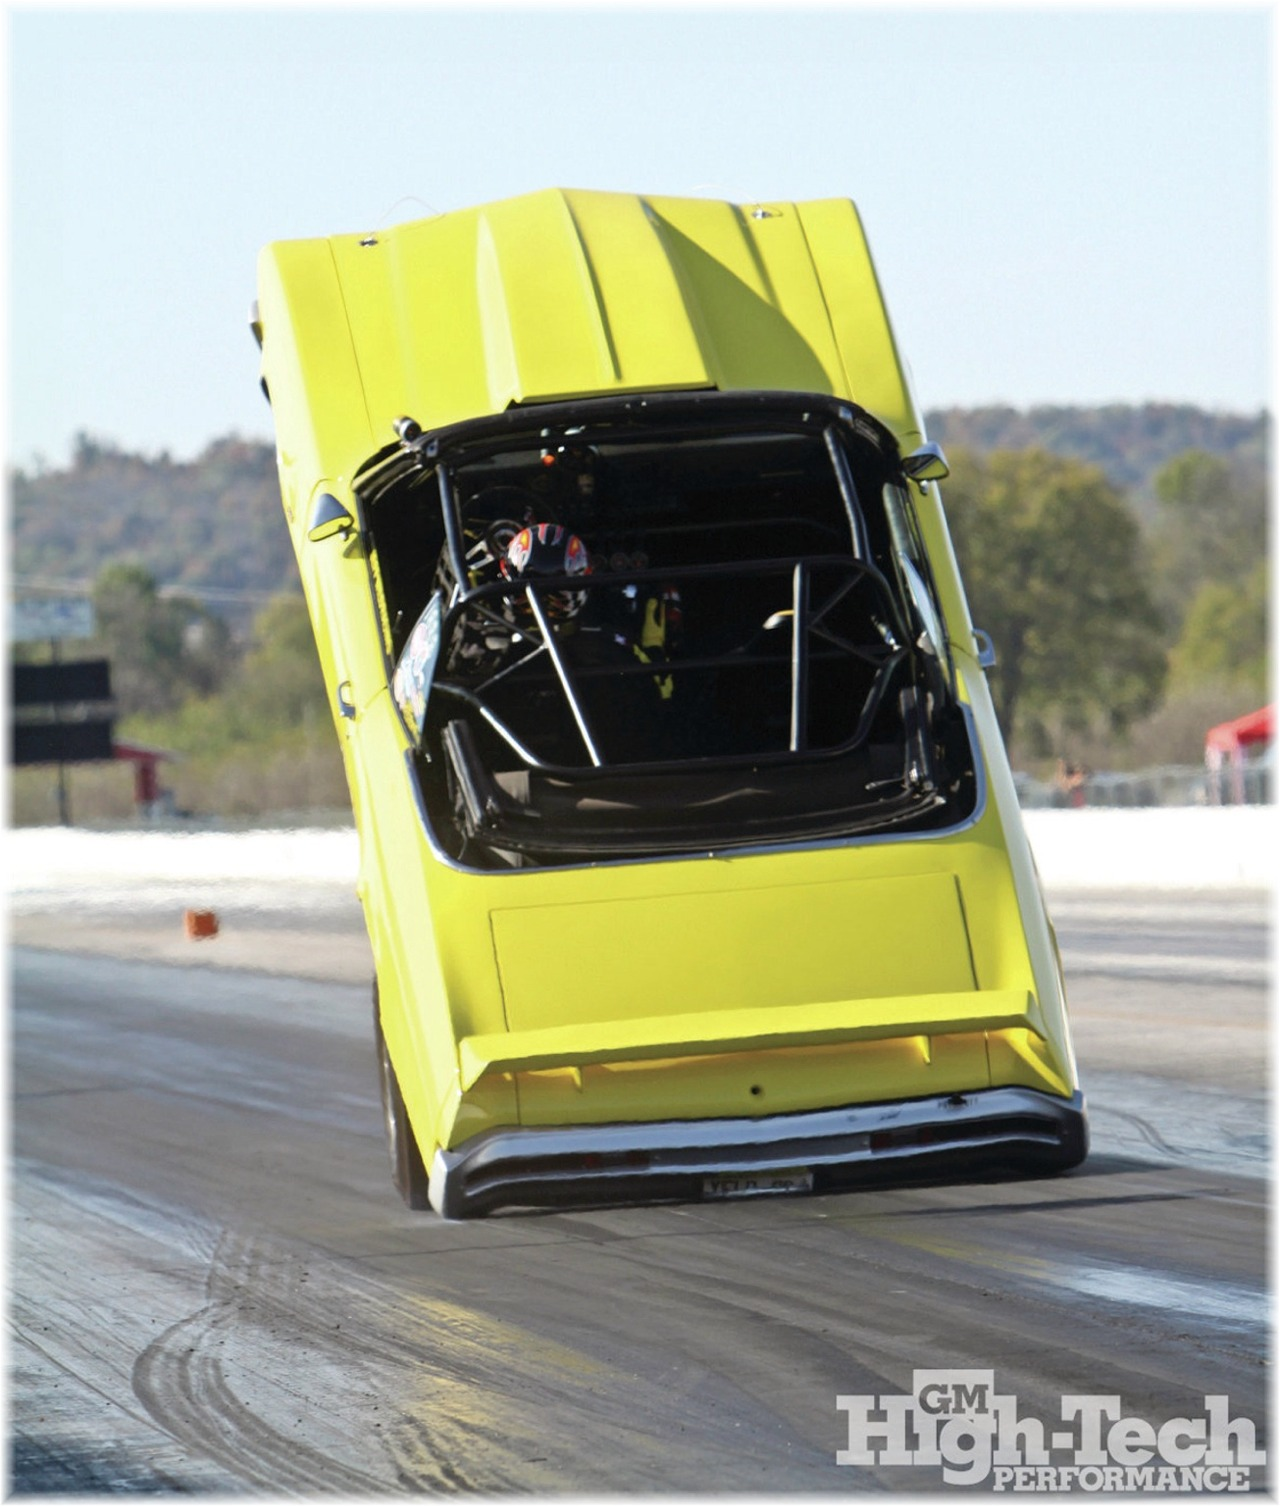 click to enlarge. April 2012 Issue of GM High-Tech Performance Magazine by Justin Cesler from Oct 2011 - 31st Annual GS Nationals.